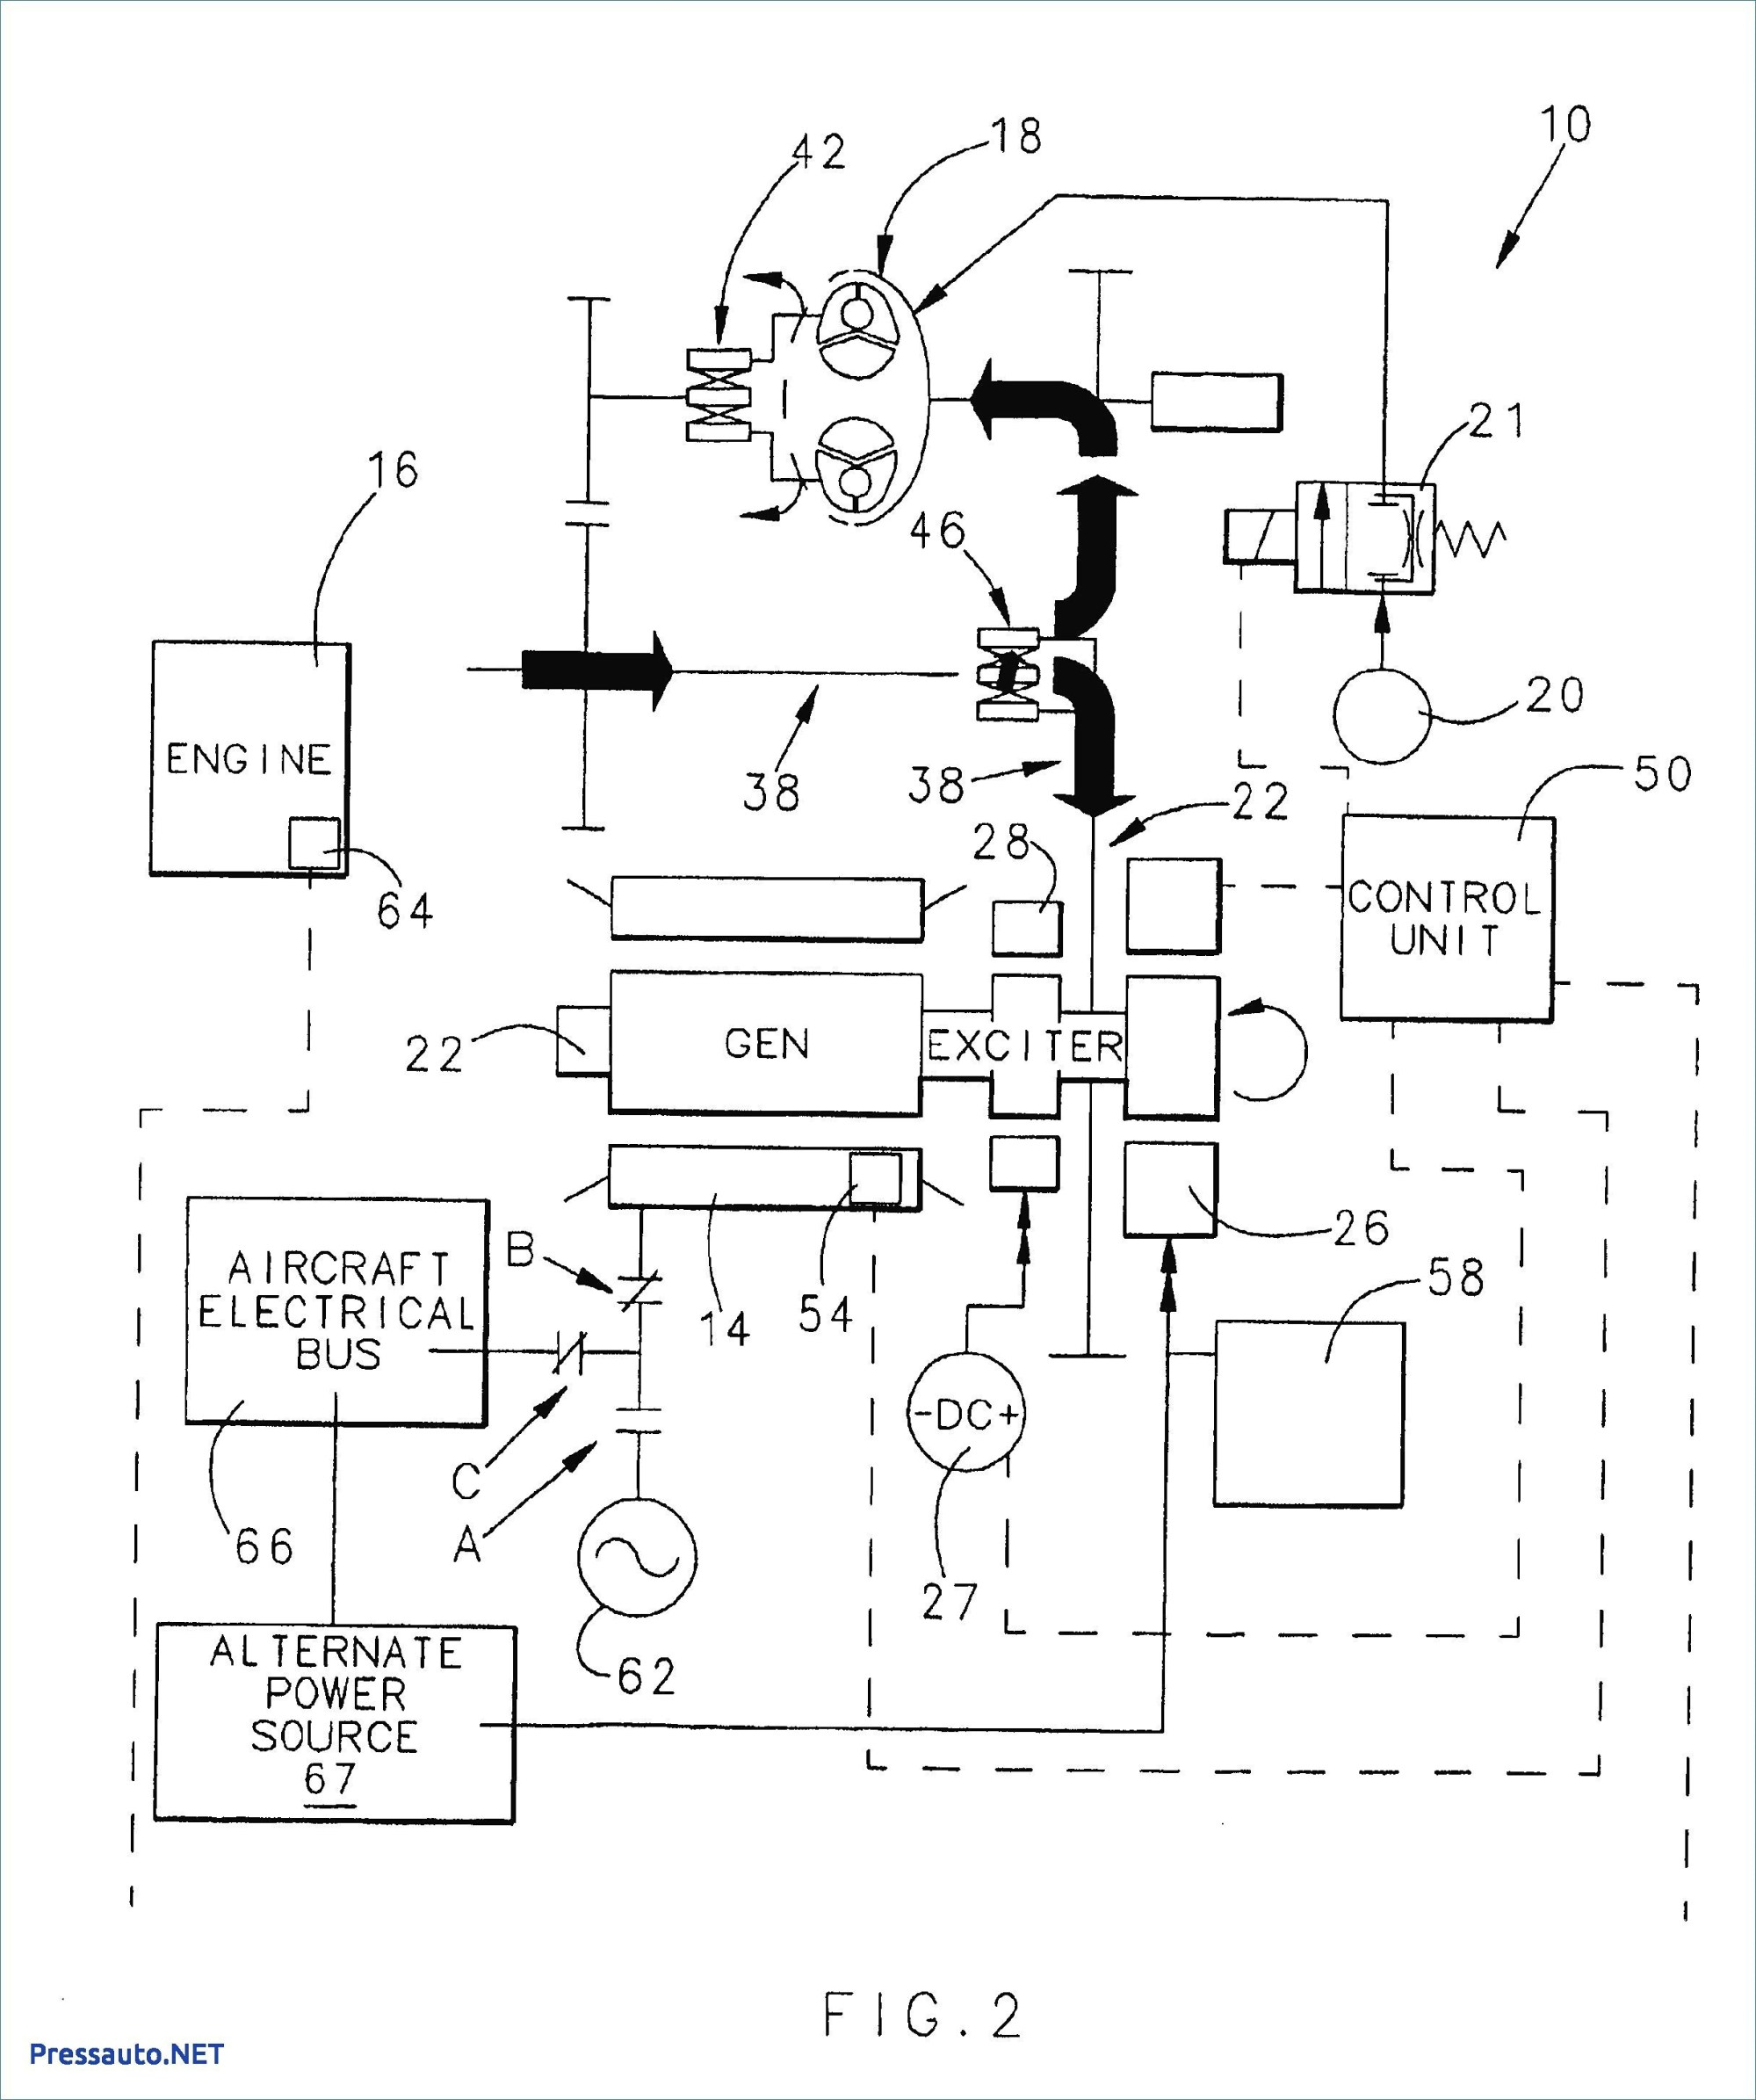 hight resolution of dodge 3 0 engine diagram fuel pump relay diagram u2022 rh isstore co toyota camry engine